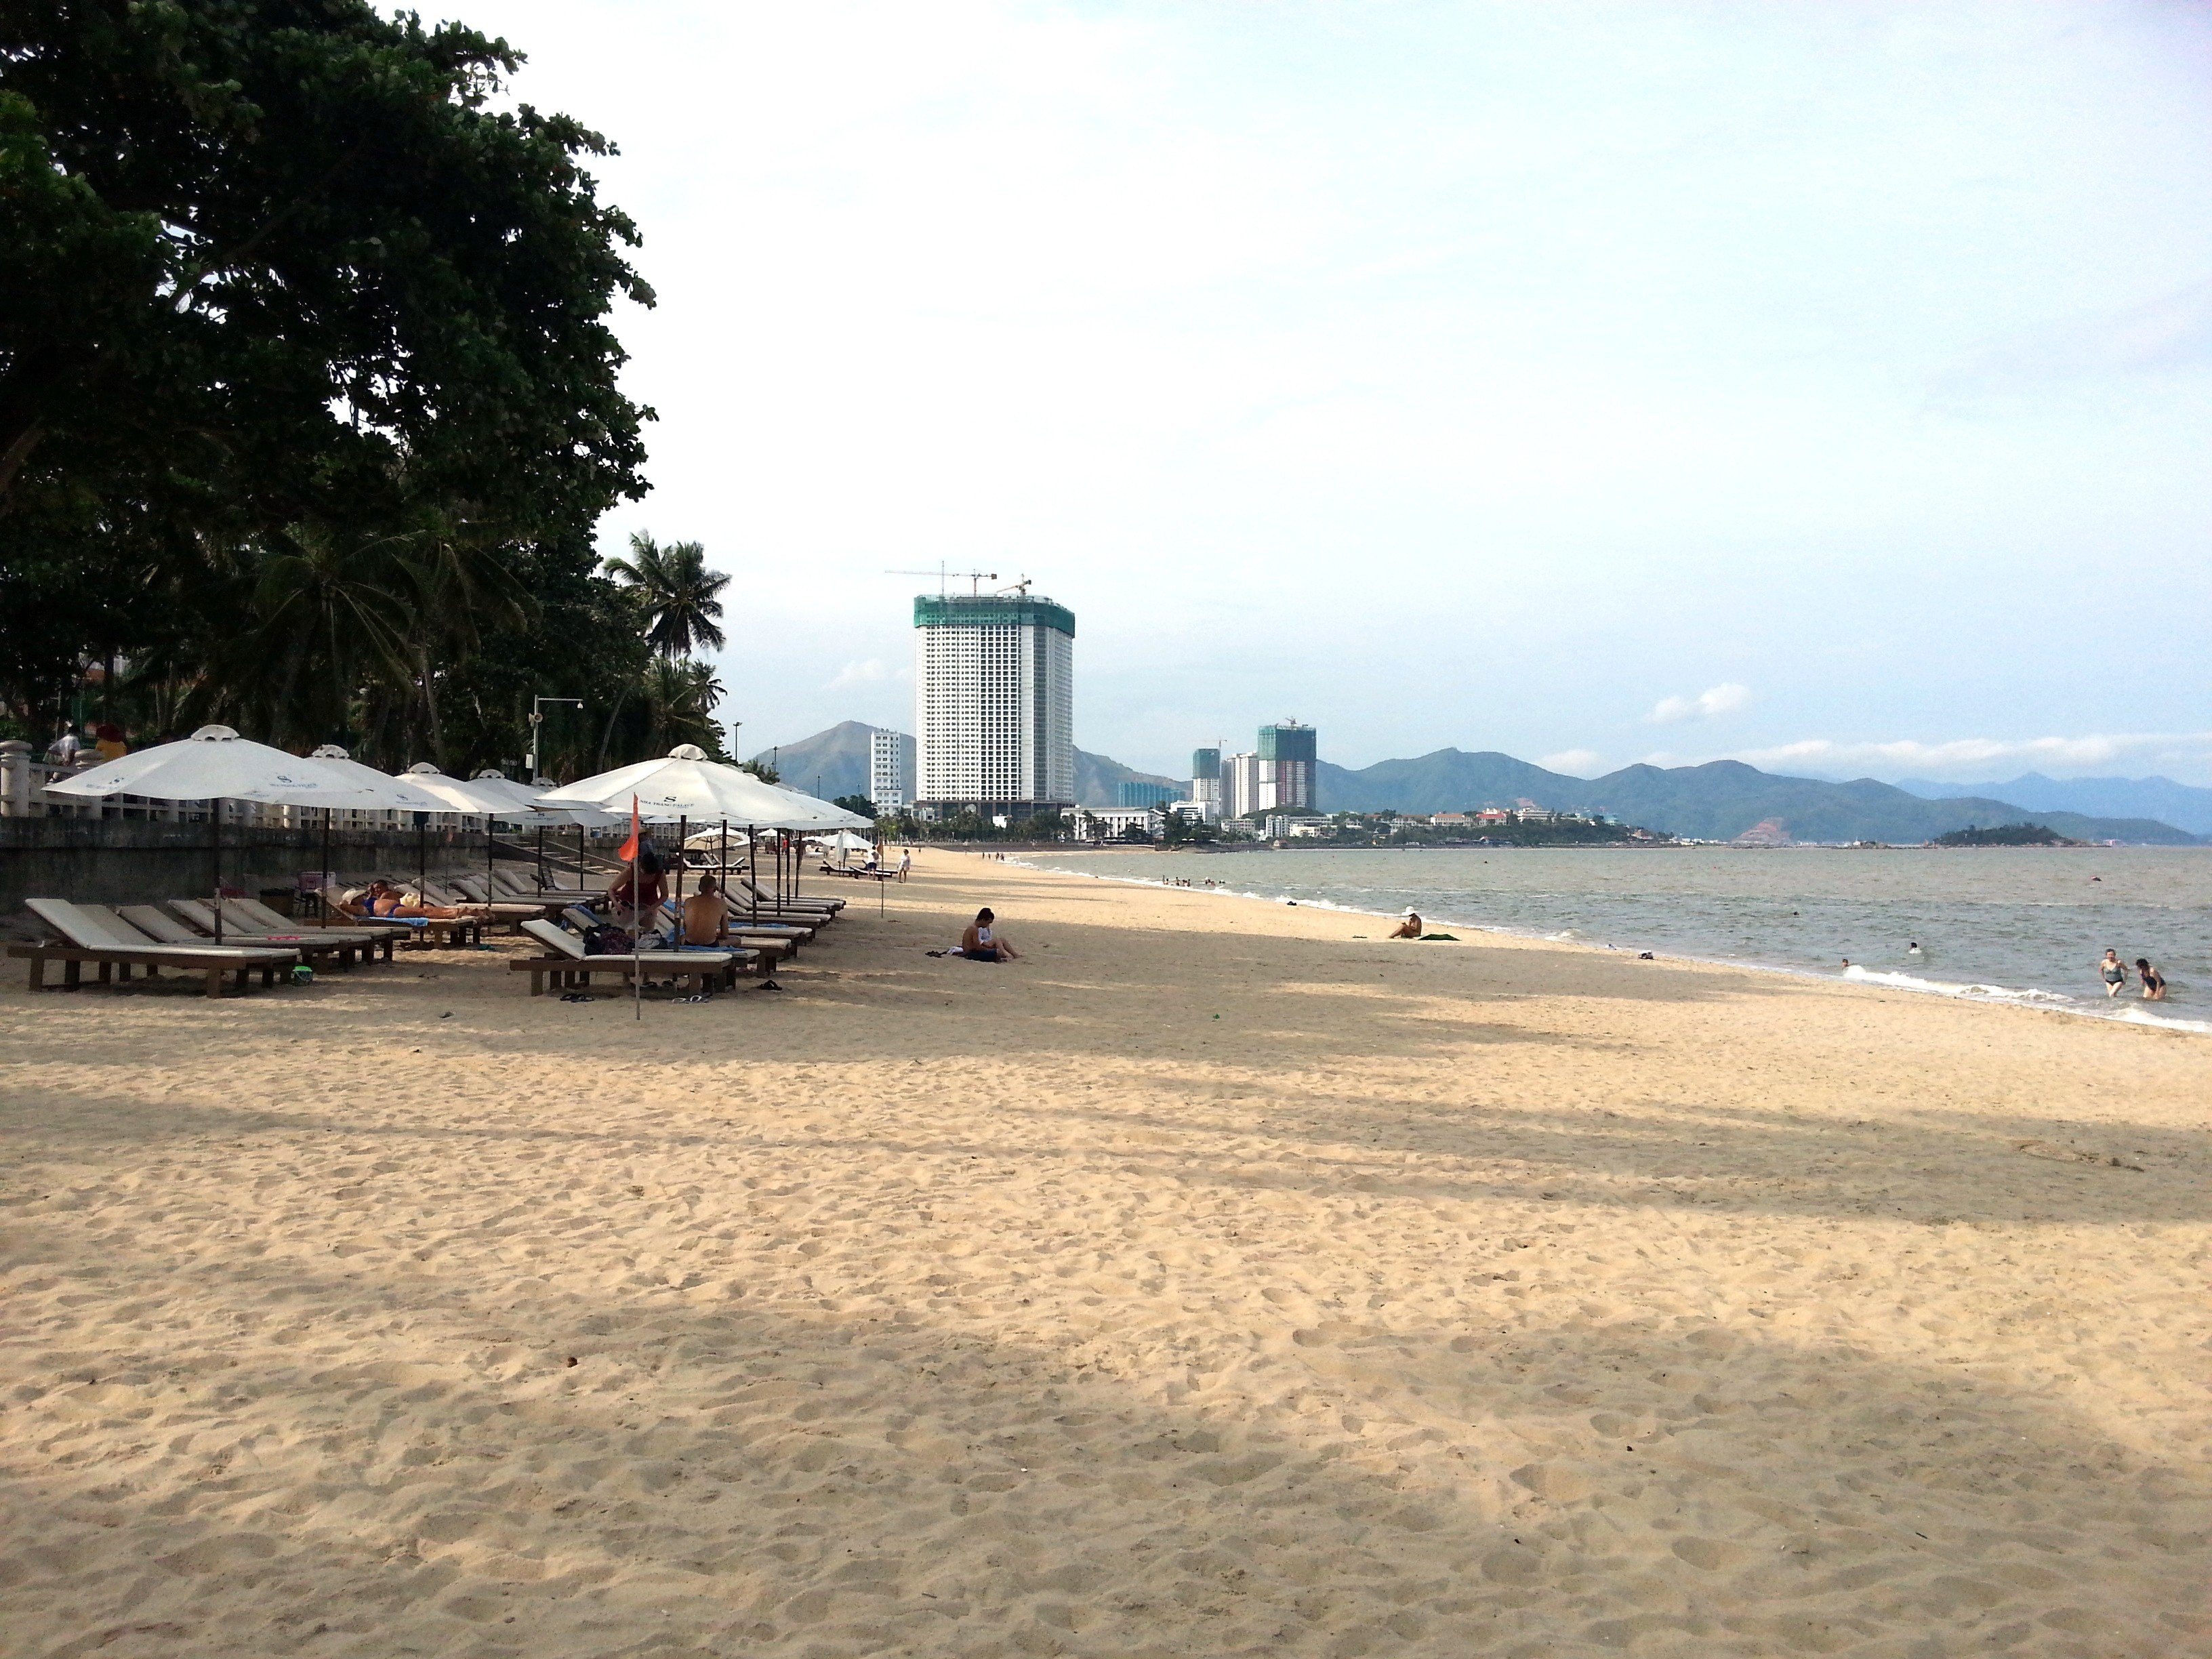 Looking north on Nha Trang Beach